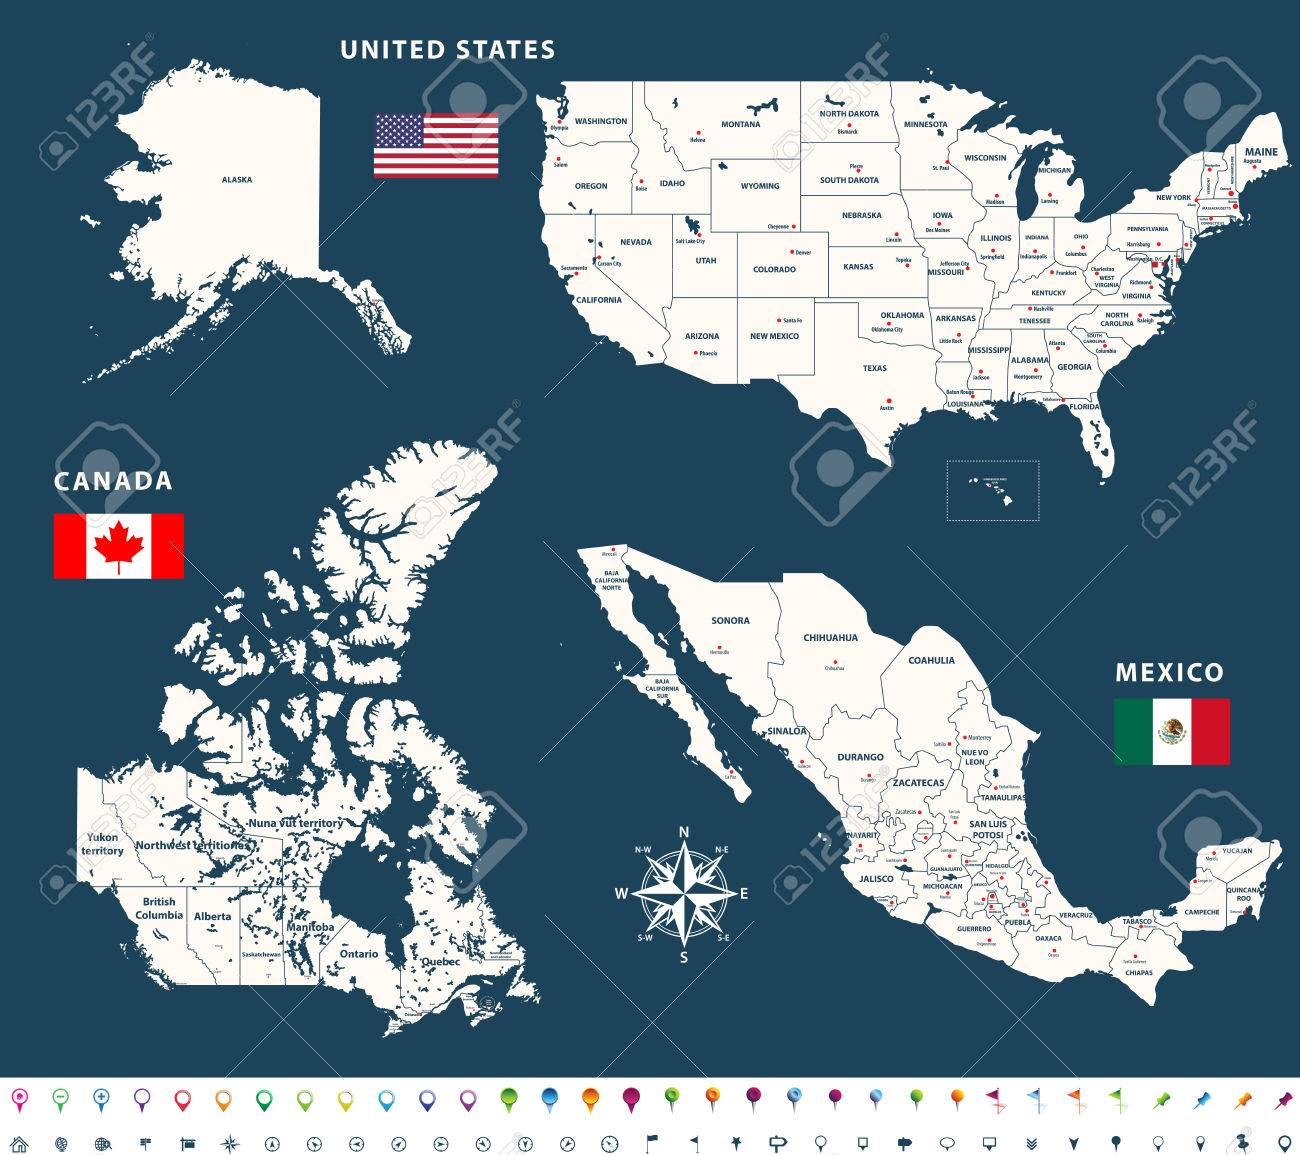 Canada United States And Mexico Map.Maps Of Canada United States And Mexico With Flags And Location